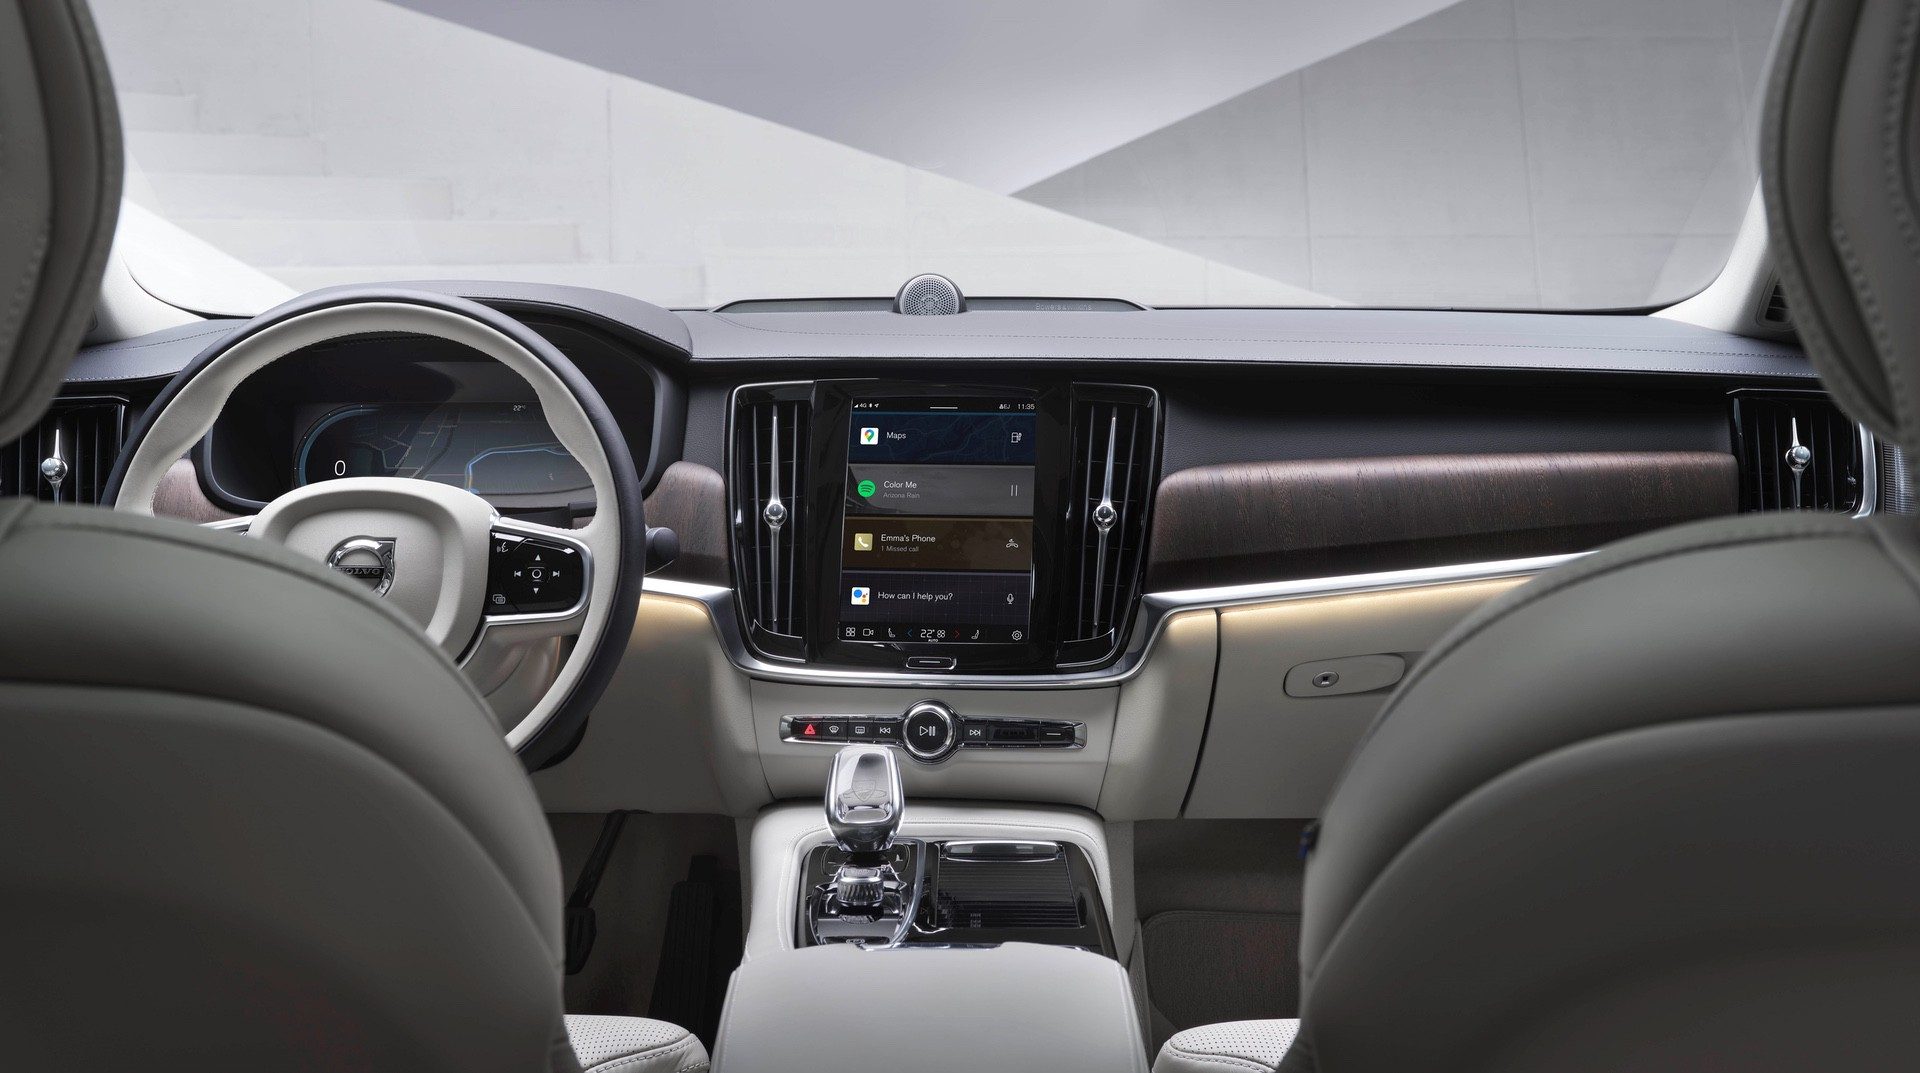 279244_Volvo_Cars_brings_infotainment_system_with_Google_built_in_to_more_models